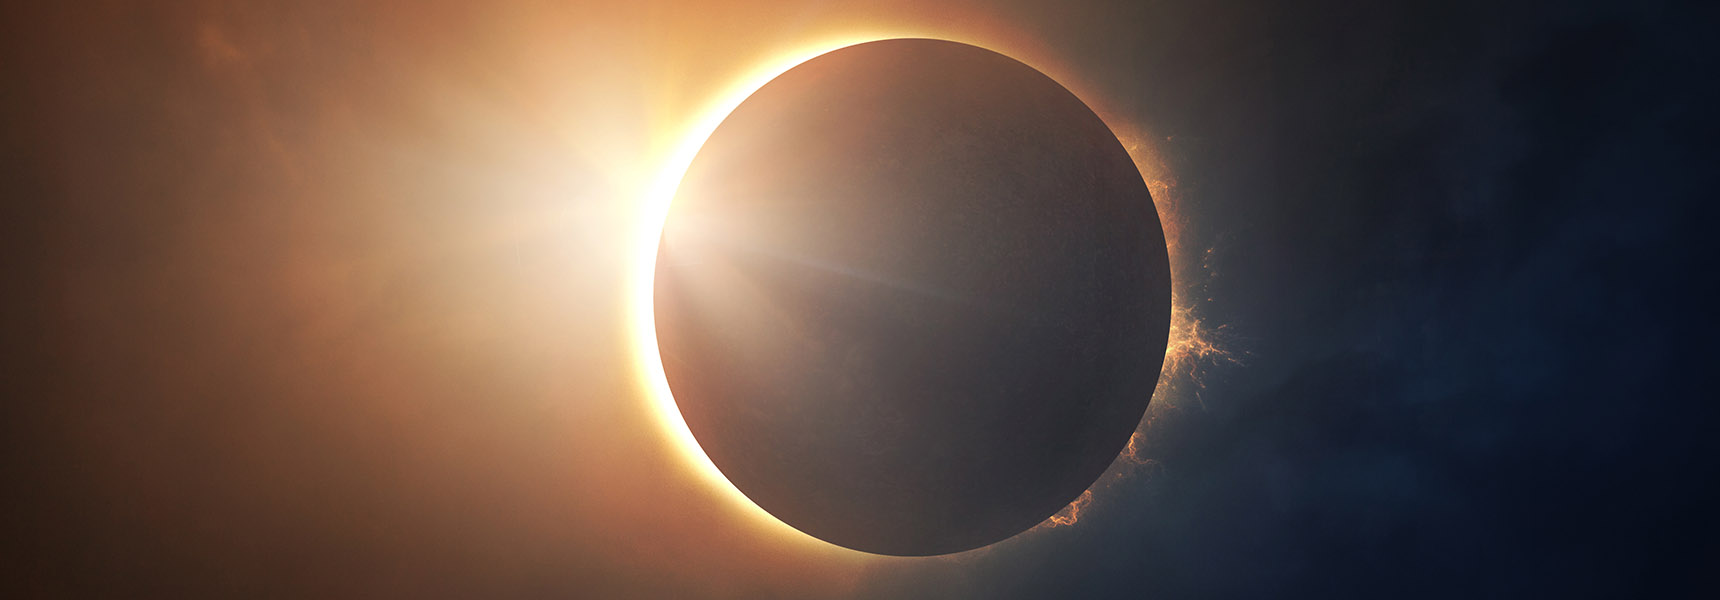 Photo of an eclipse in 2009.